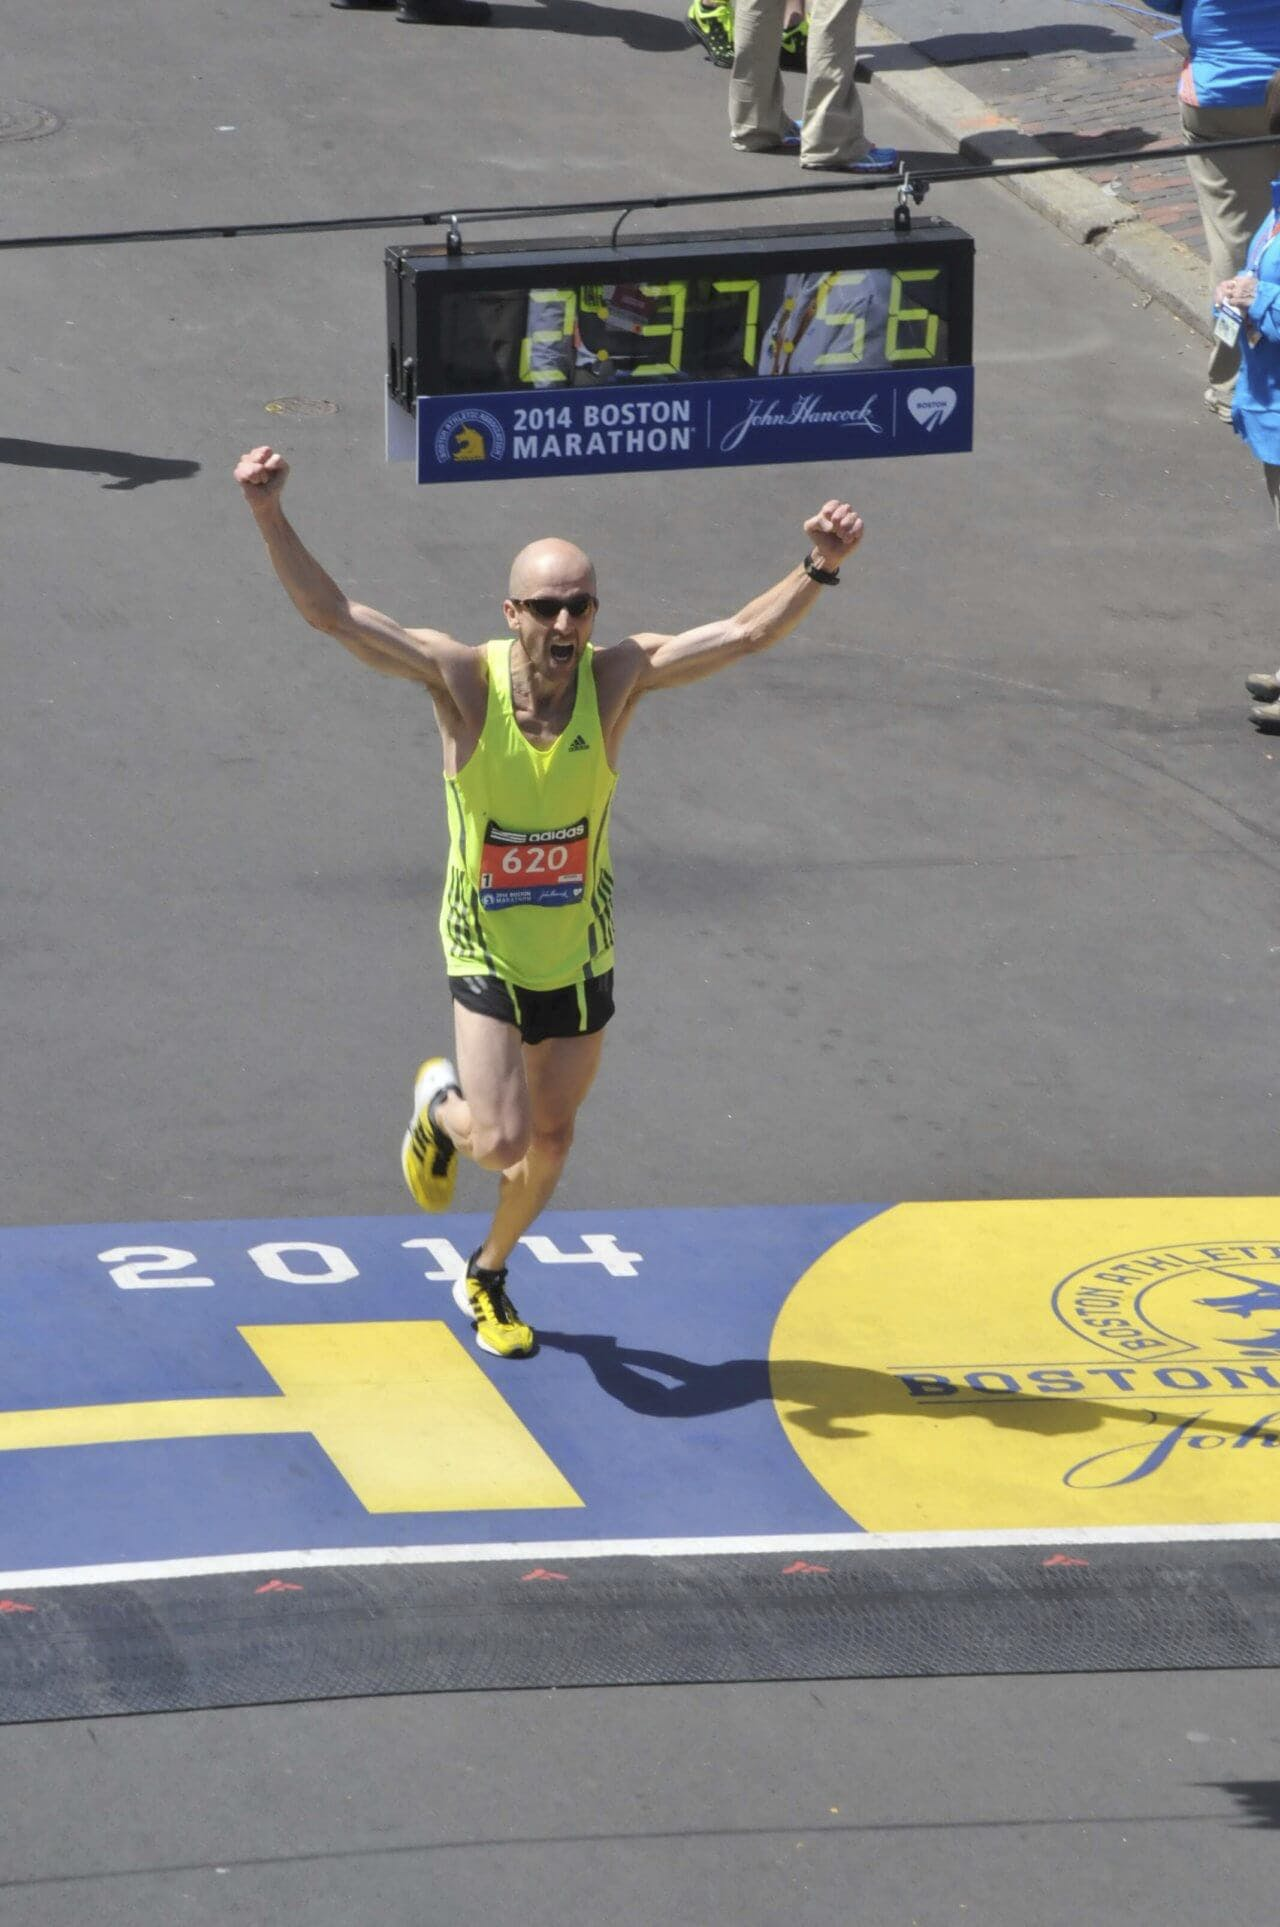 Boston Marathon at age 48